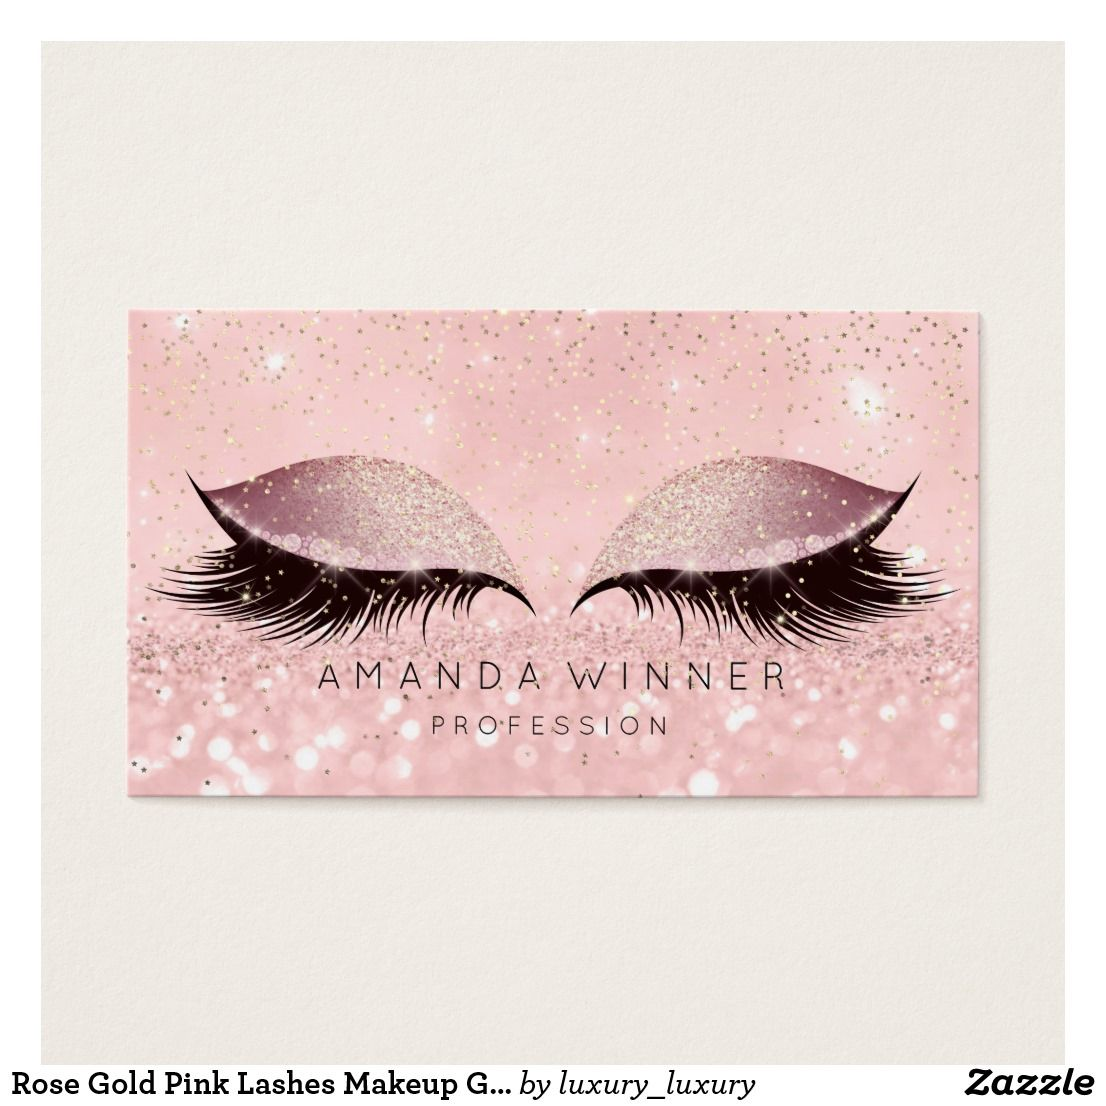 Rose gold pink lashes makeup glitter makeup business card makeup business cards glitter for Eyelash extension business cards